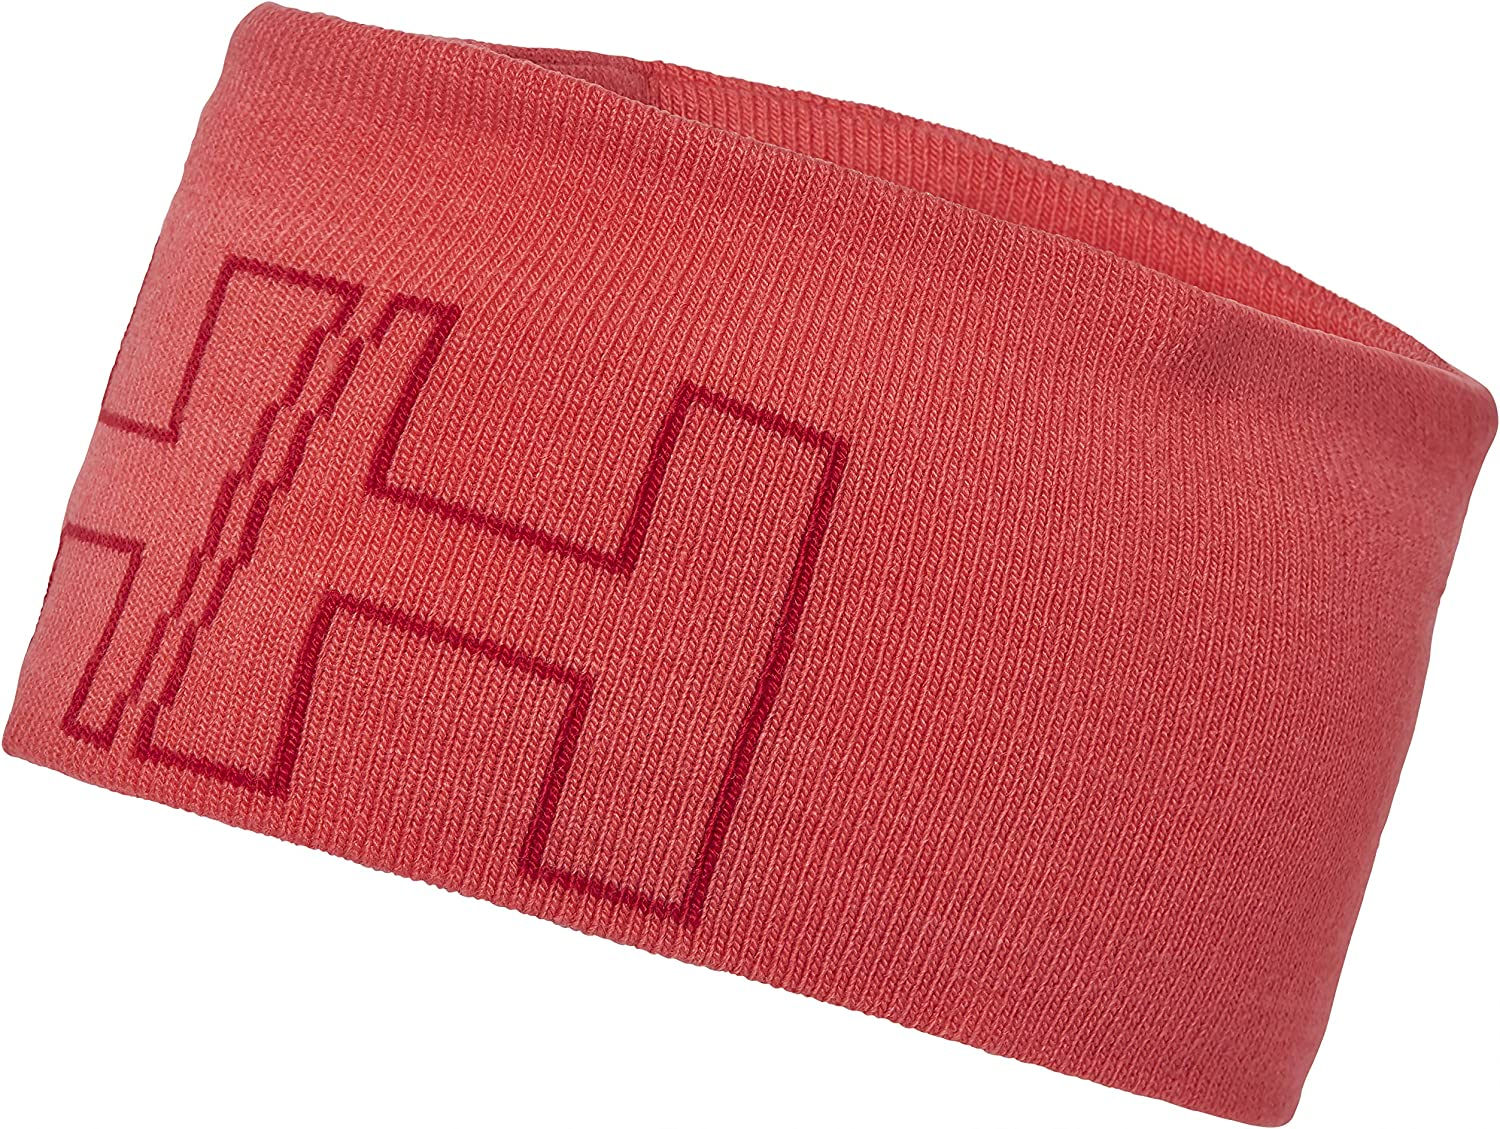 Helly-Hansen Unisex-Adult Outline Knitted Hh Iconic Logo Brand Beanie